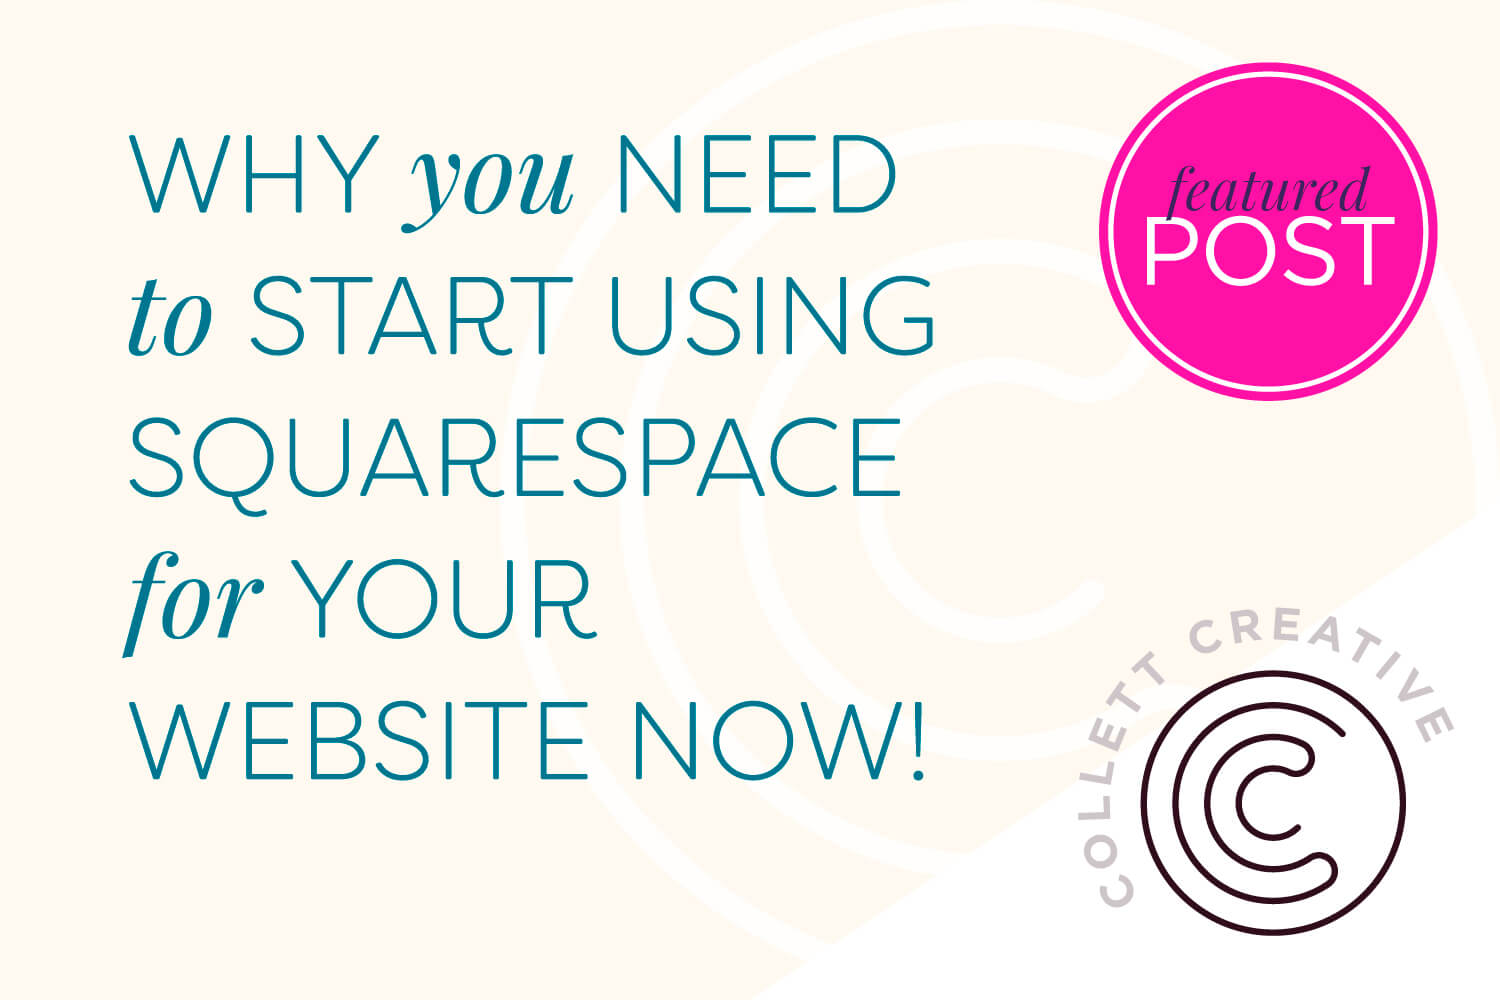 Why you need to start using Squarespace for your website now!